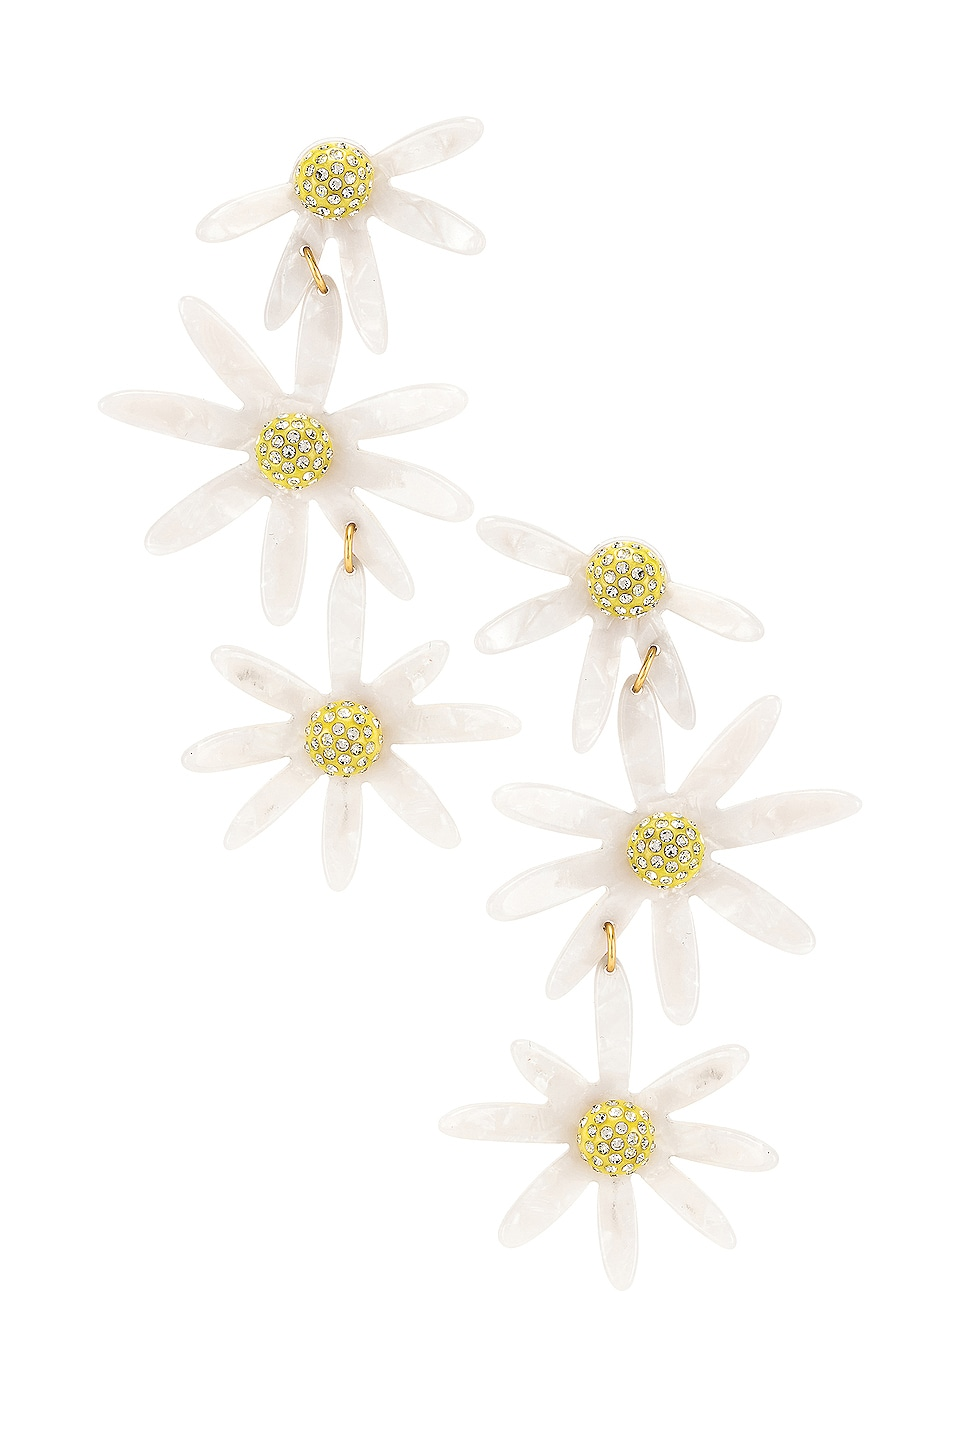 For Love & Lemons Lucite Daisy Earrings in White